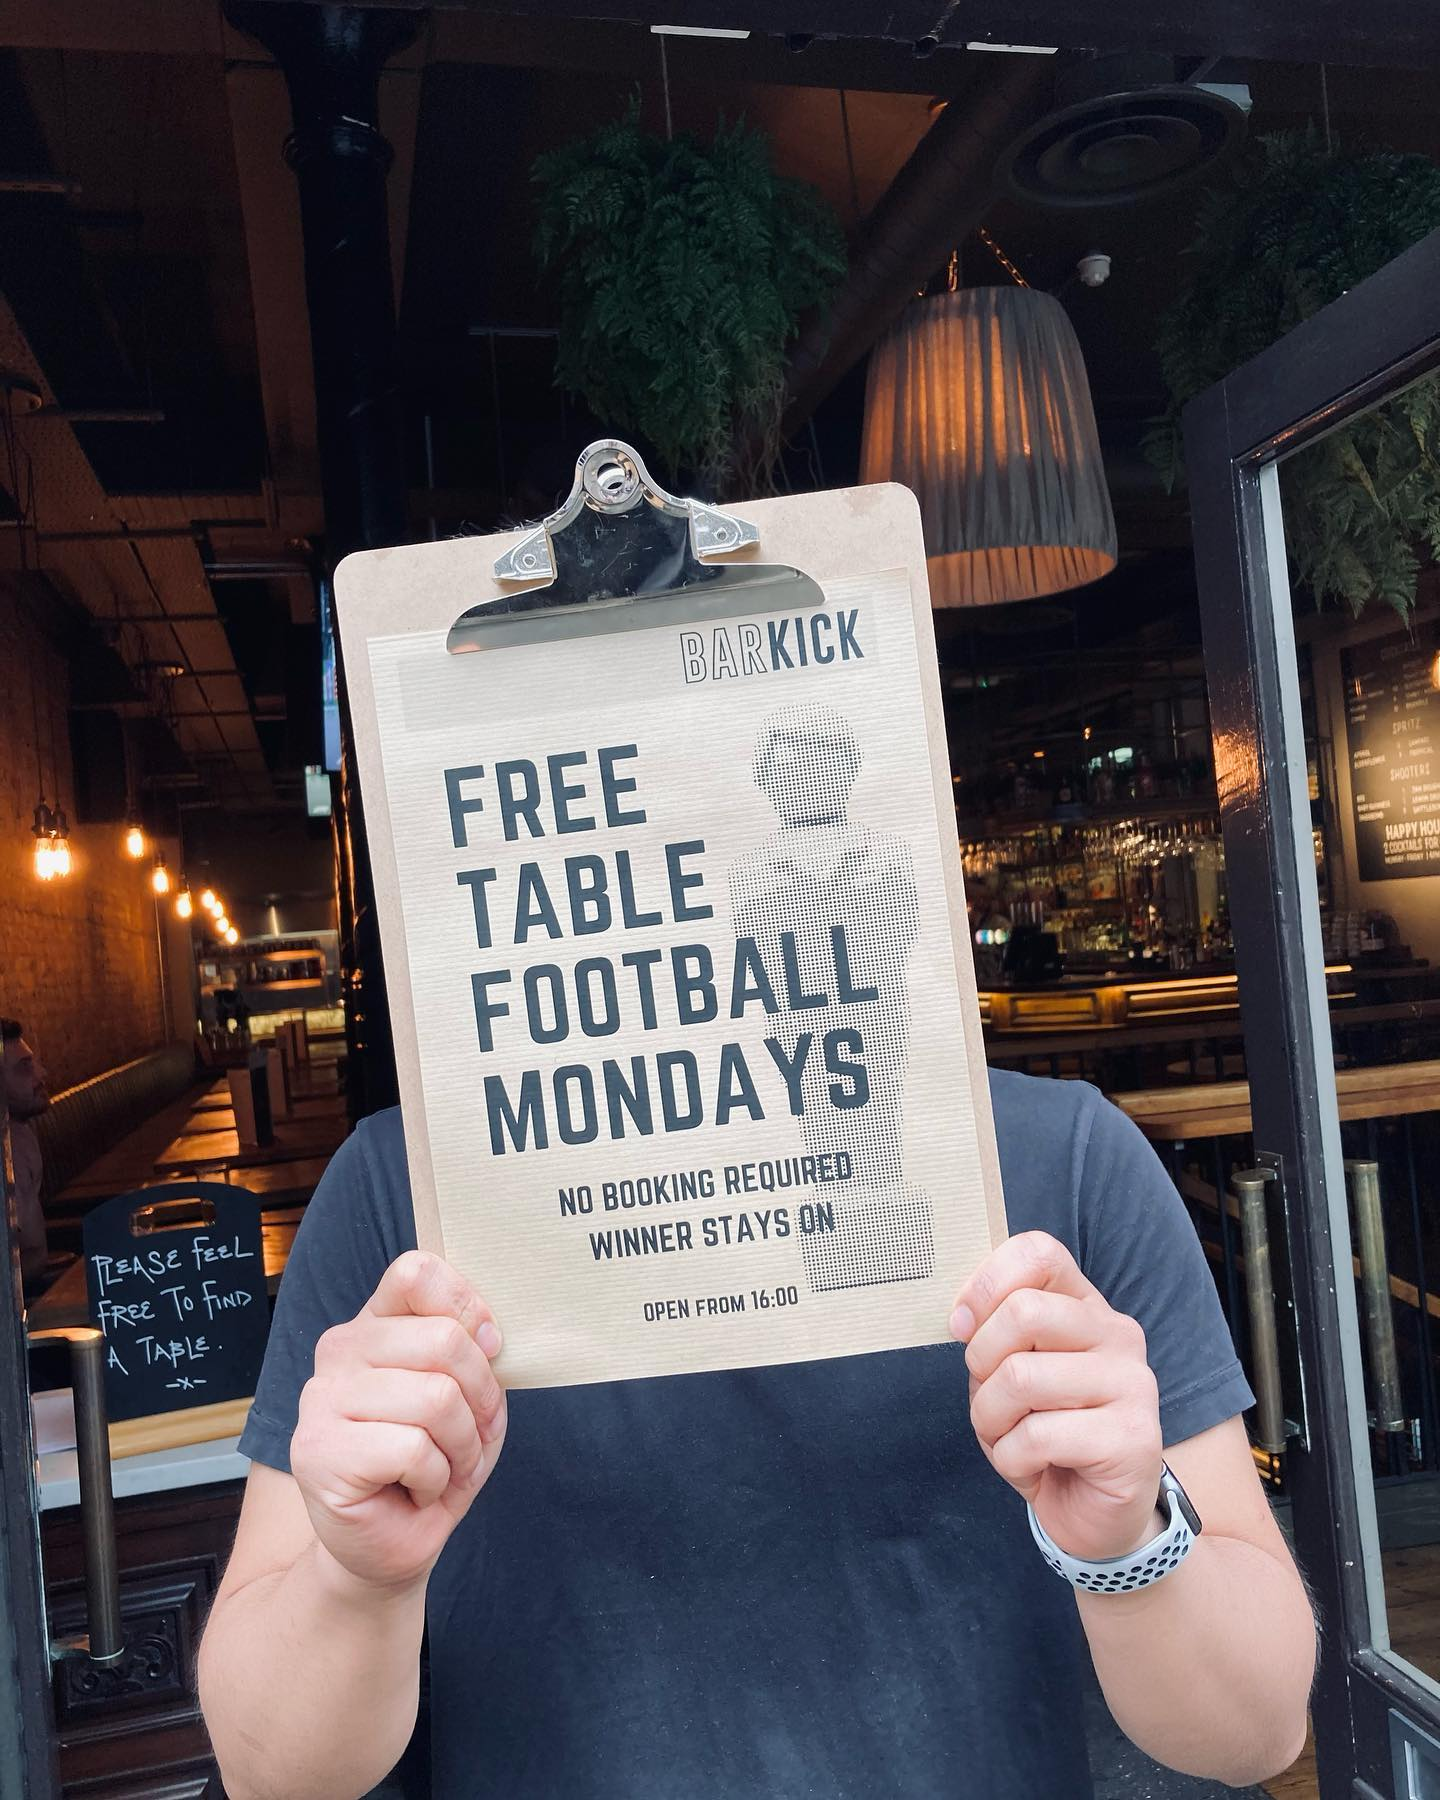 TABLE FOOTBALL ENTHUSIASTS! We're back open 7 days a week!  . And to celebrate we're unlocking our 3 table football tables into free play mode all night! ⚽️We're going to have them front and centre in our basement bar, & it's winner stays on, dog eat dog kind of world. No bookings being taken, just pop in for a game. #NoSpinning 😘 x . . . . #barkick #barkicklondon #shoreditch #foosball #tablefootball #football #pubgames #competition #winnerstayson #craftbeer #smashburgers #cocktails #eaatlondon #london